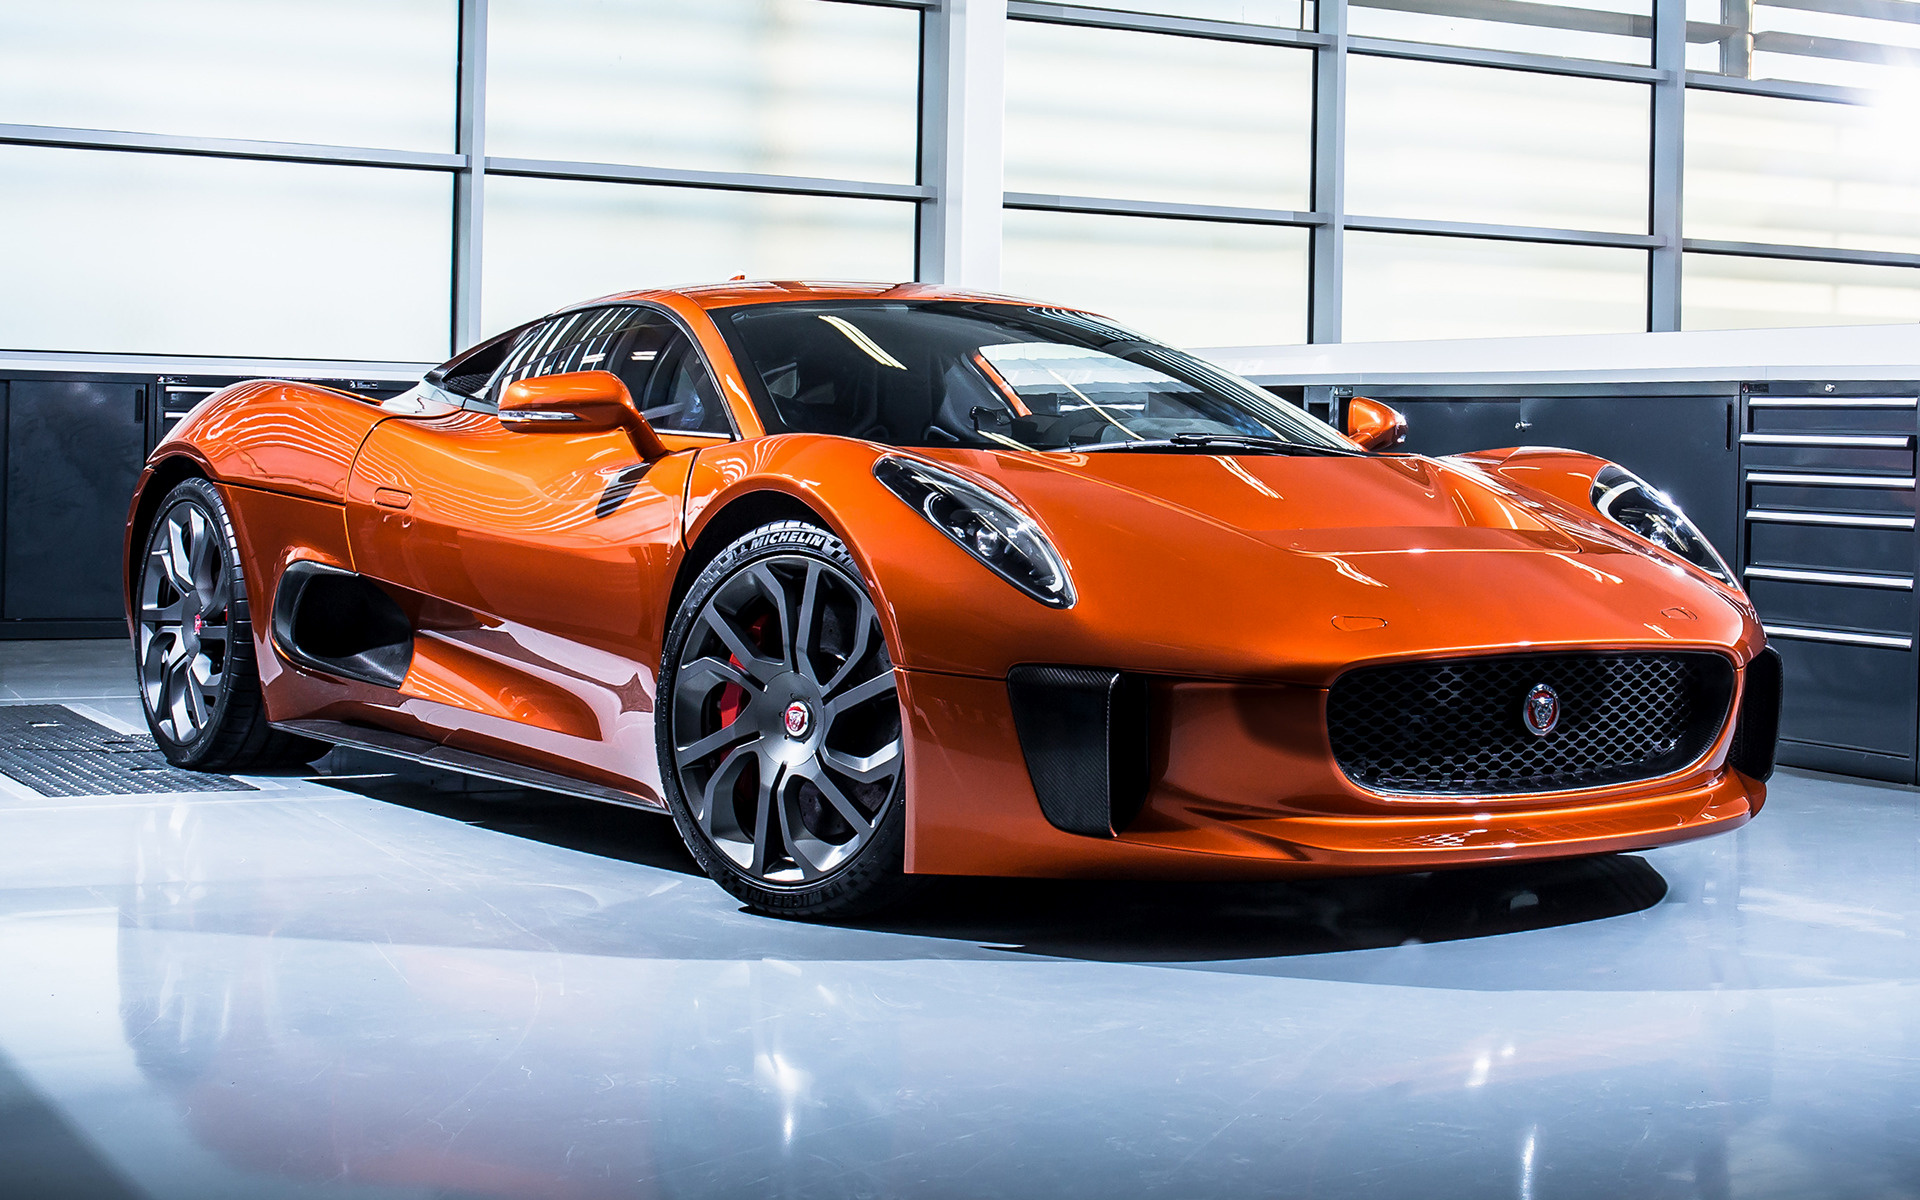 2015 Jaguar C X75 007 Spectre Wallpapers And Hd Images